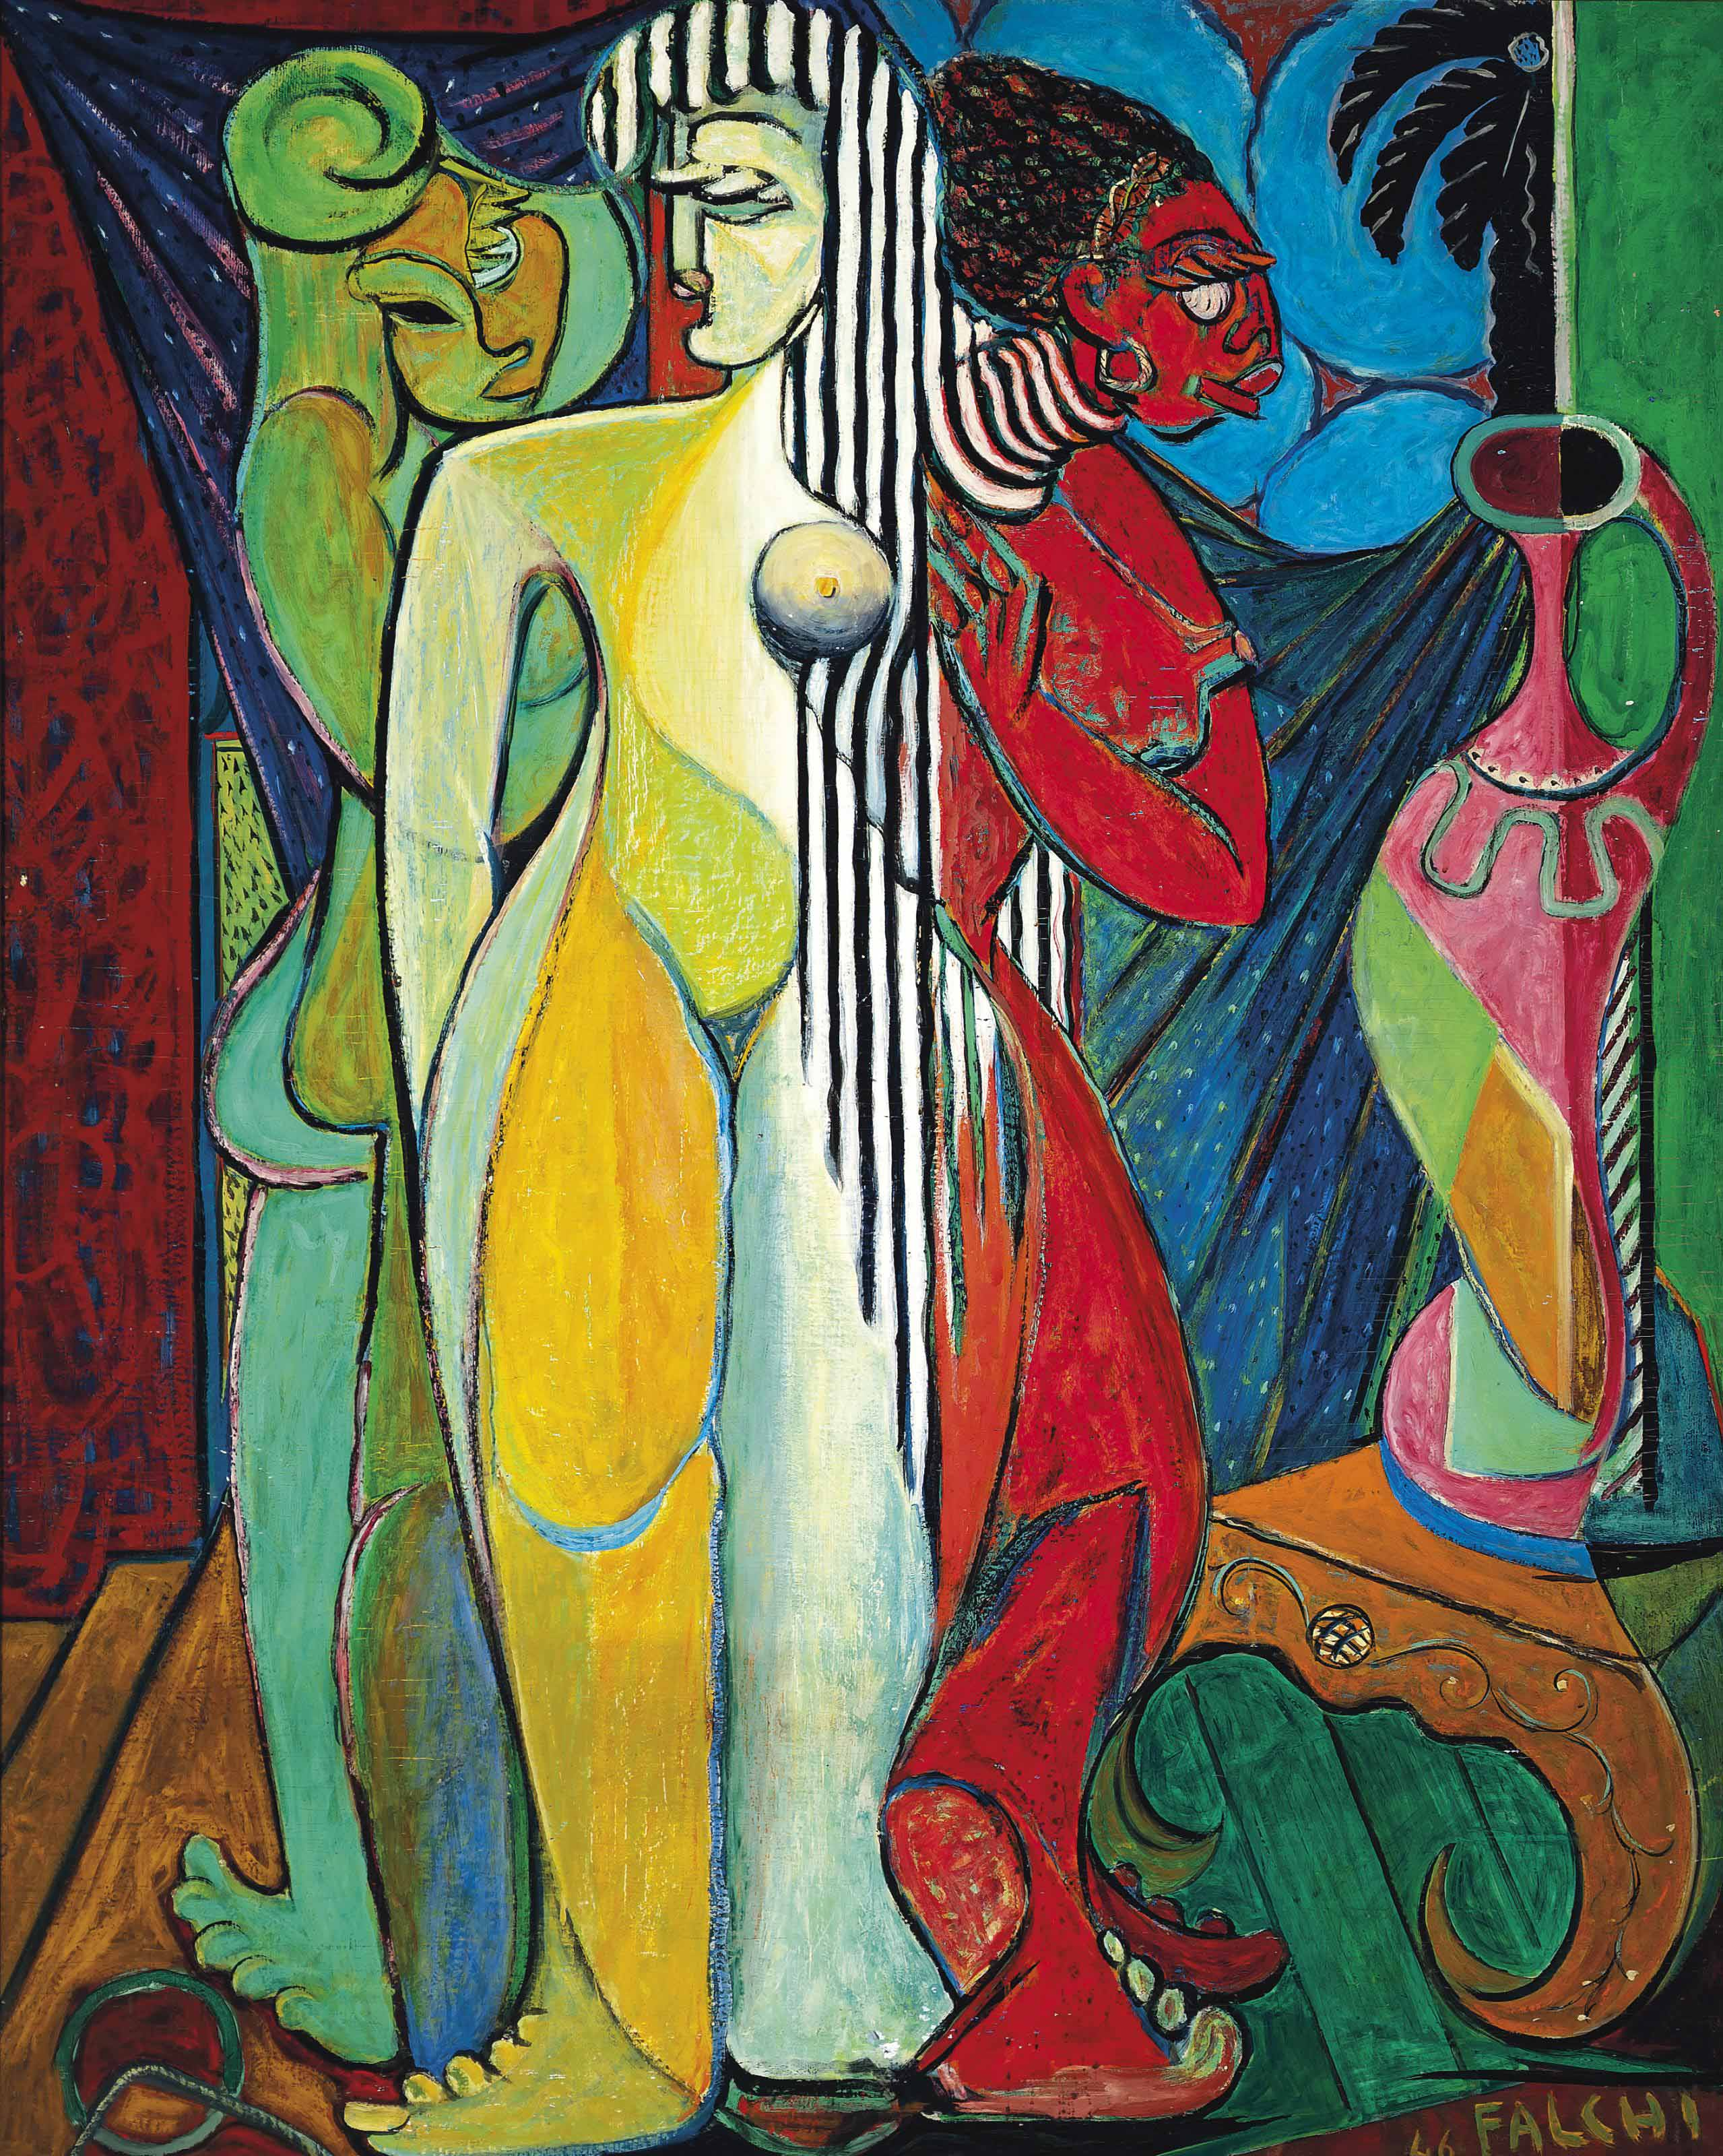 Three female nudes in an interior with a vase